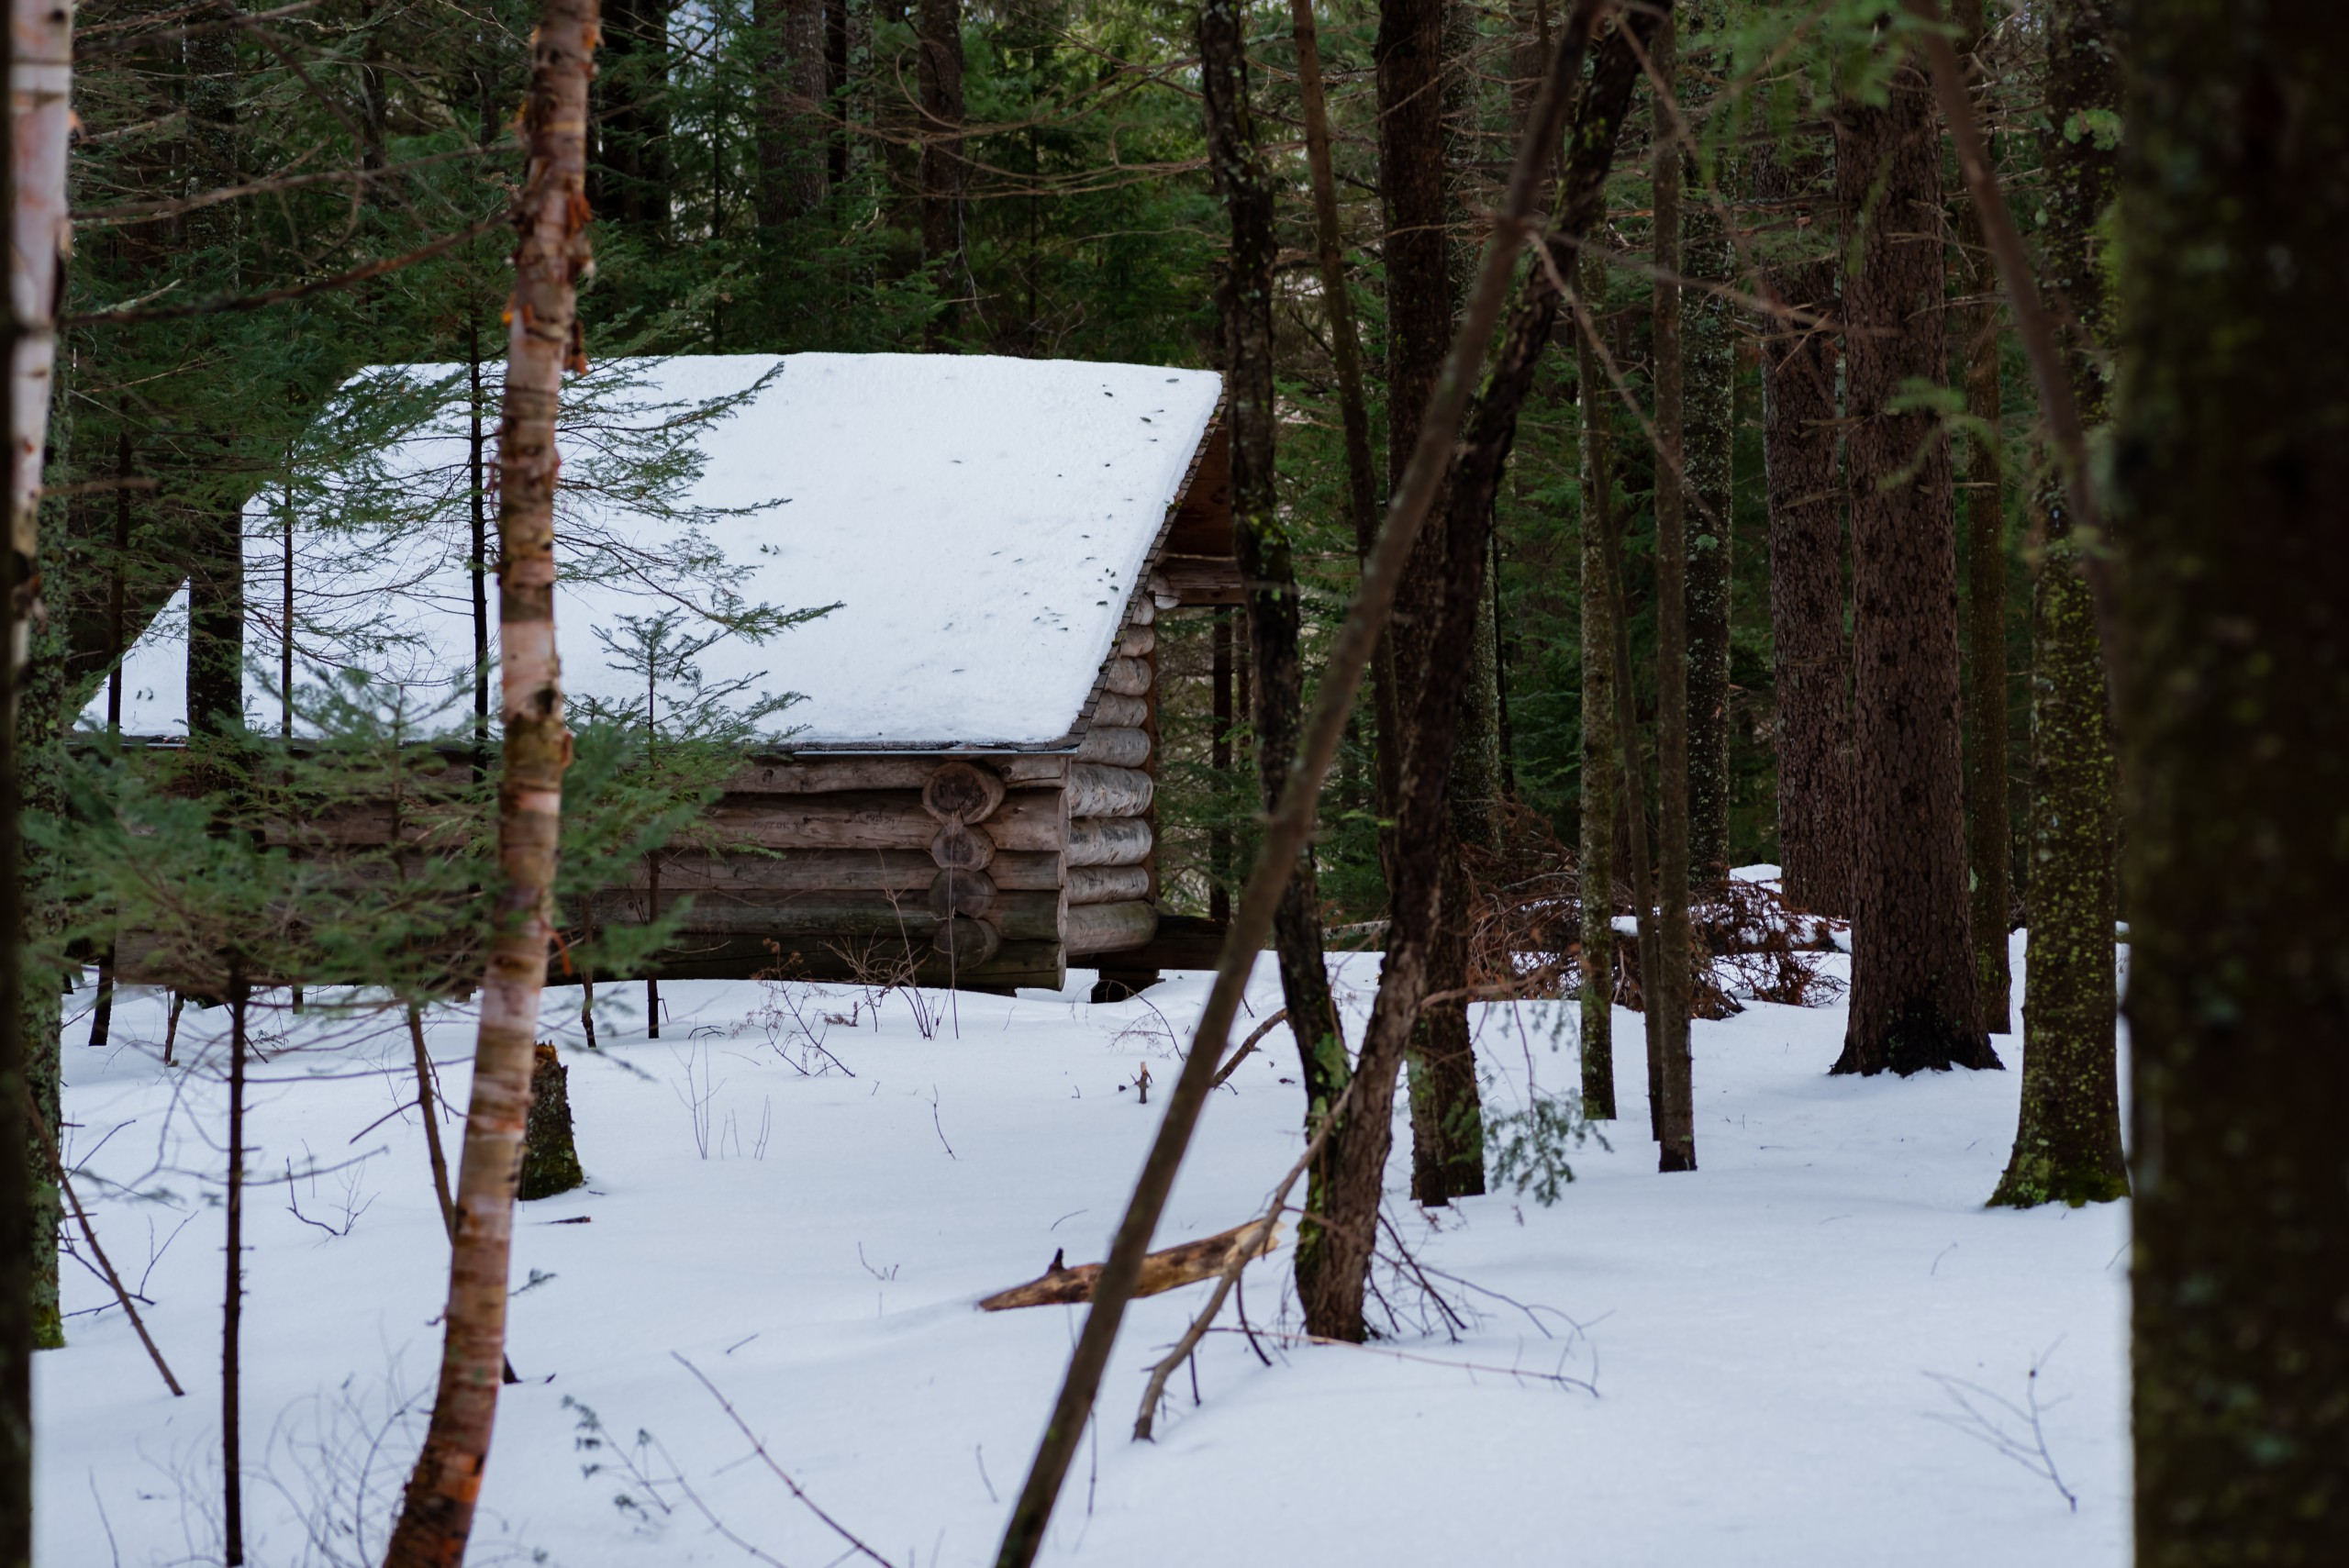 A lean-to covered in snow